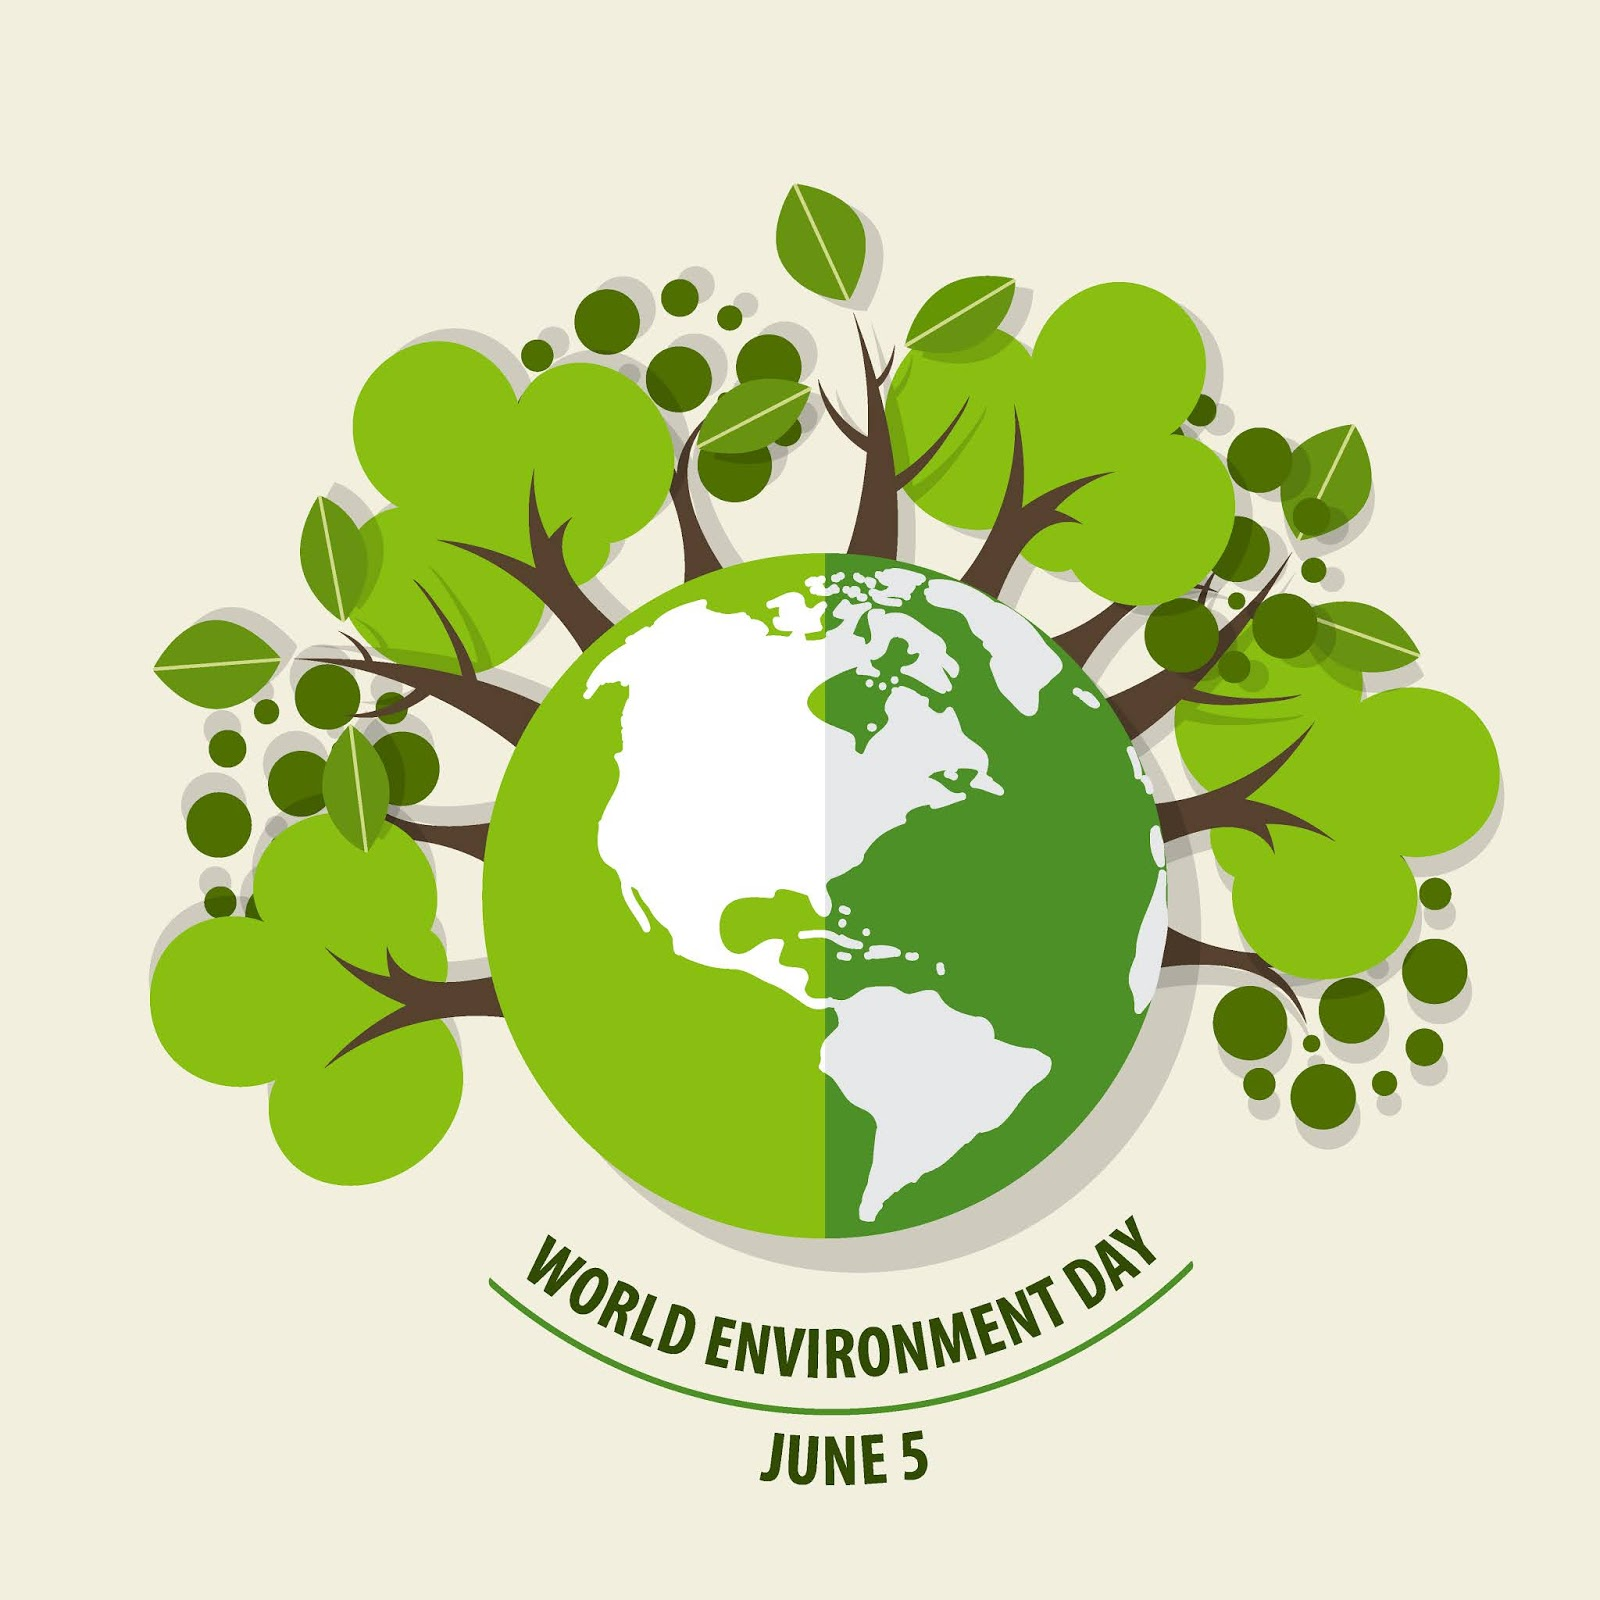 World Environment Day Concept Free Download Vector CDR, AI, EPS and PNG Formats